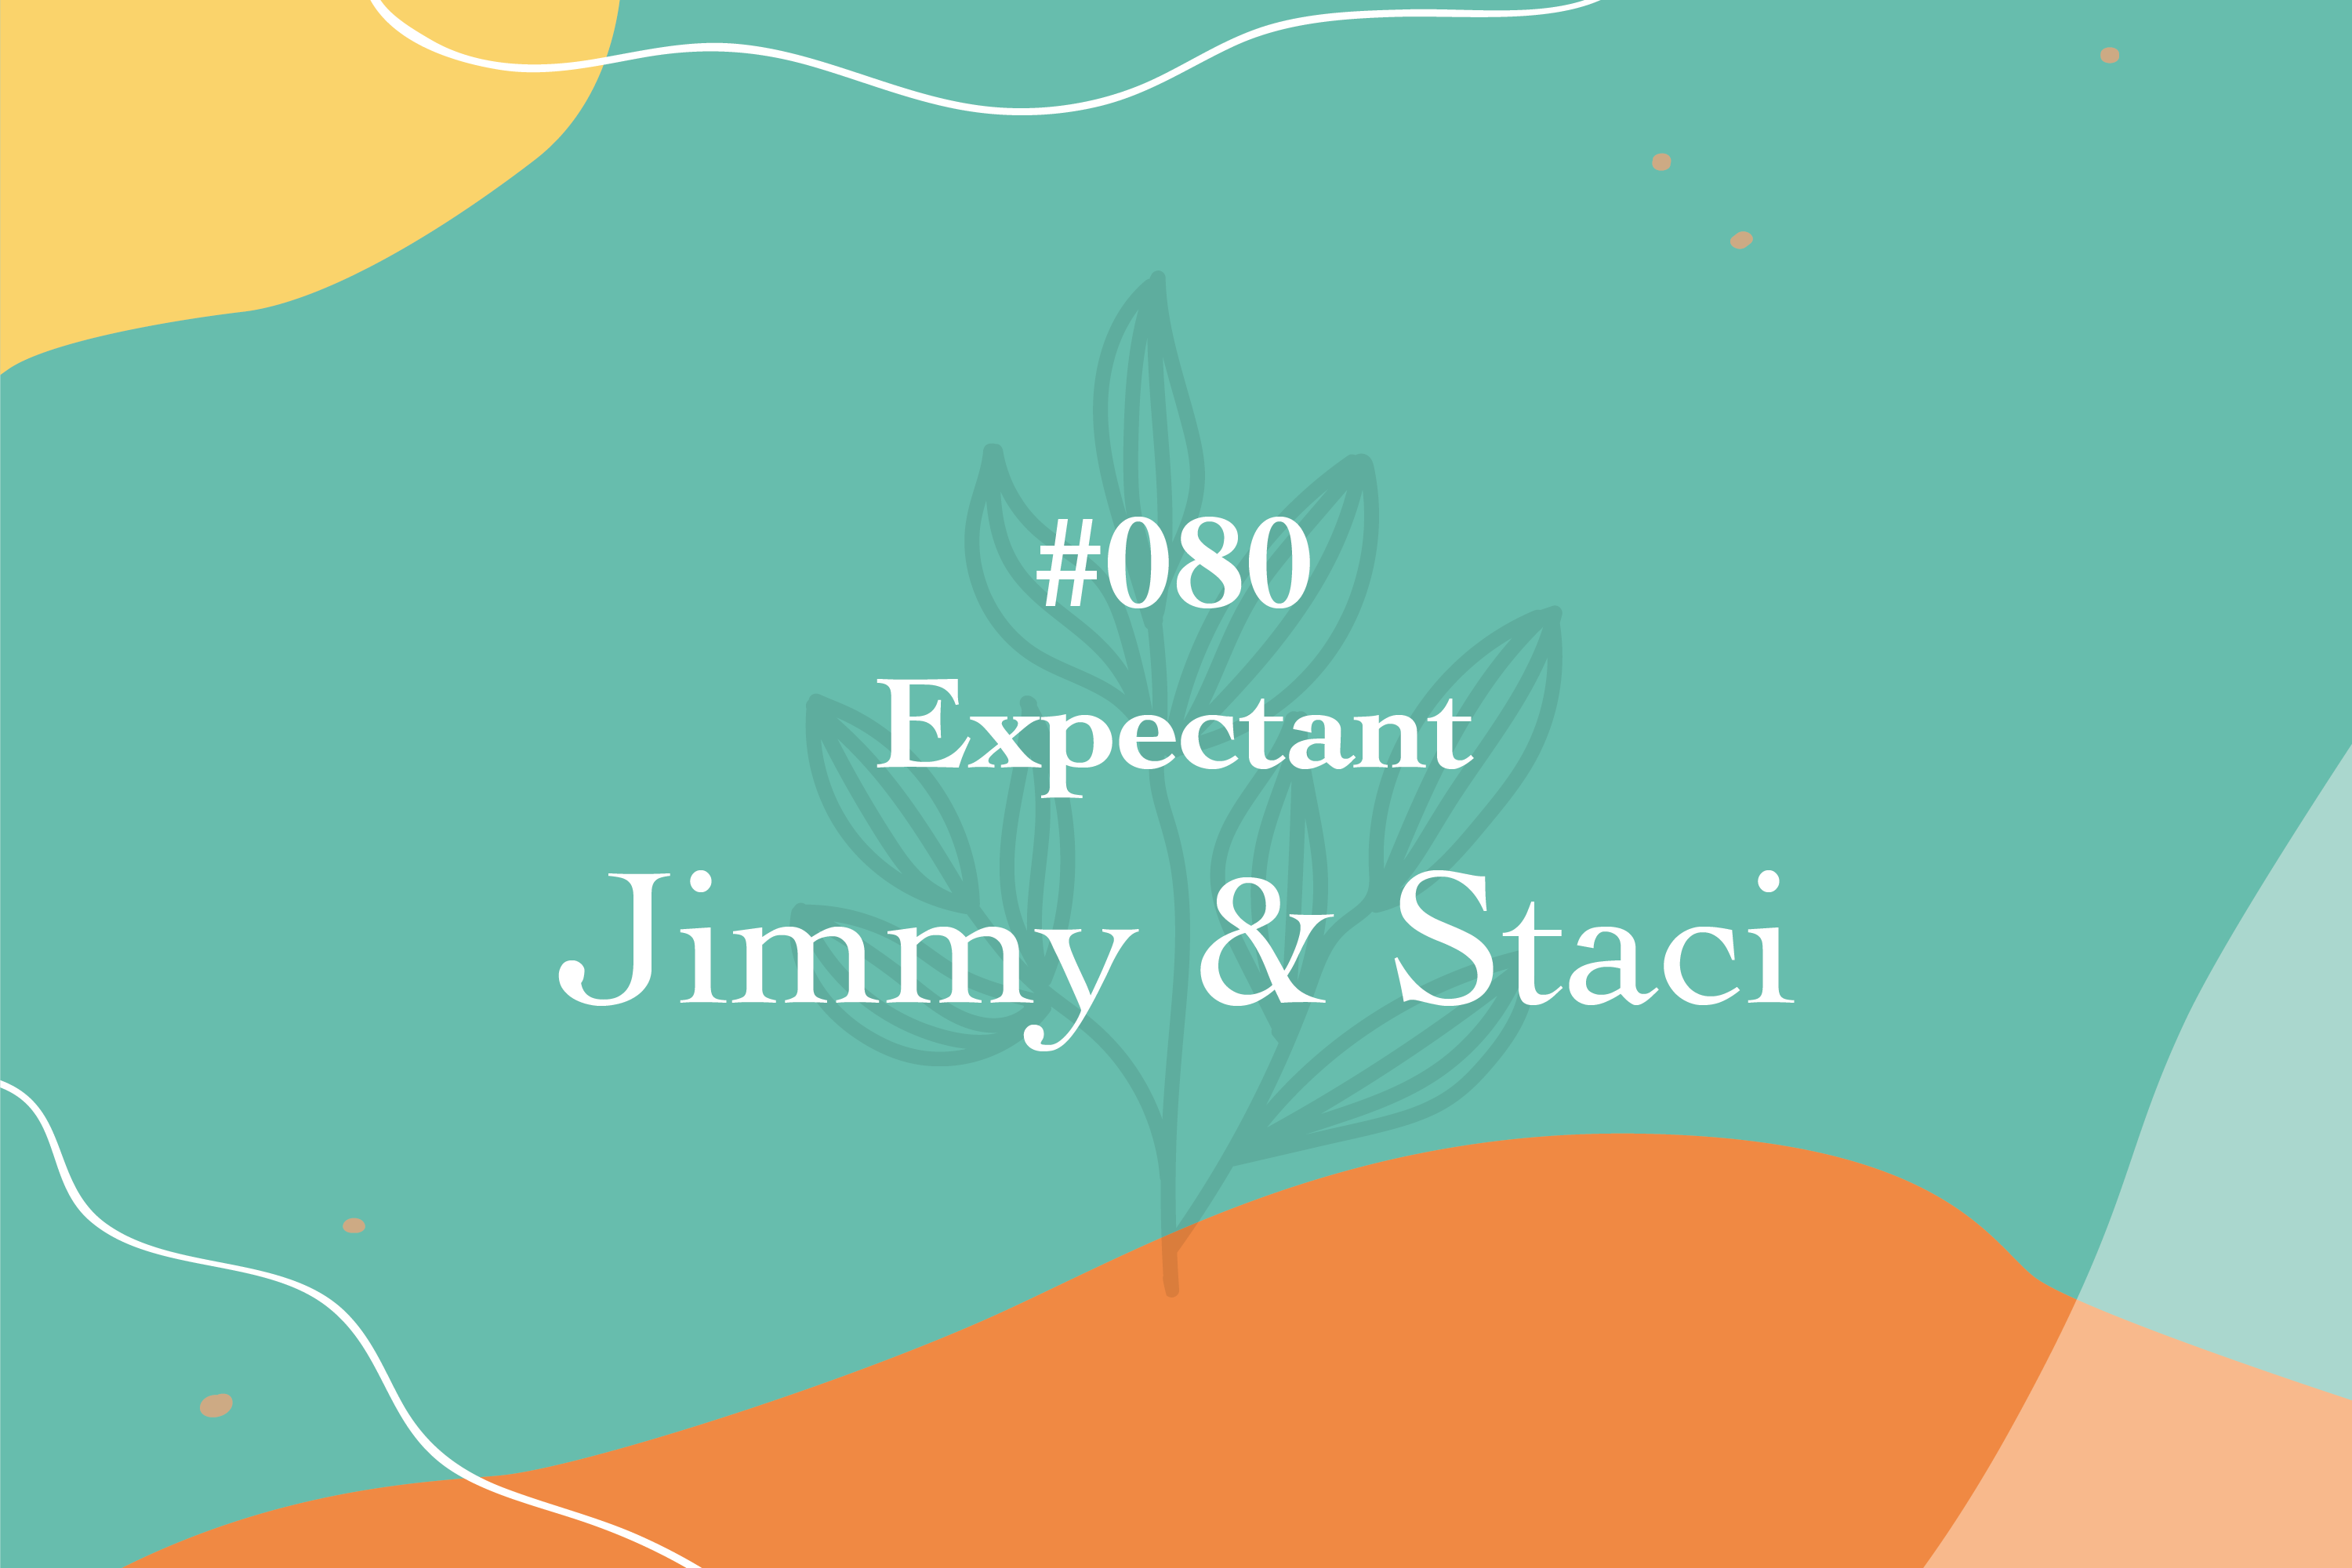 #080 Expectant: Jimmy & Staci